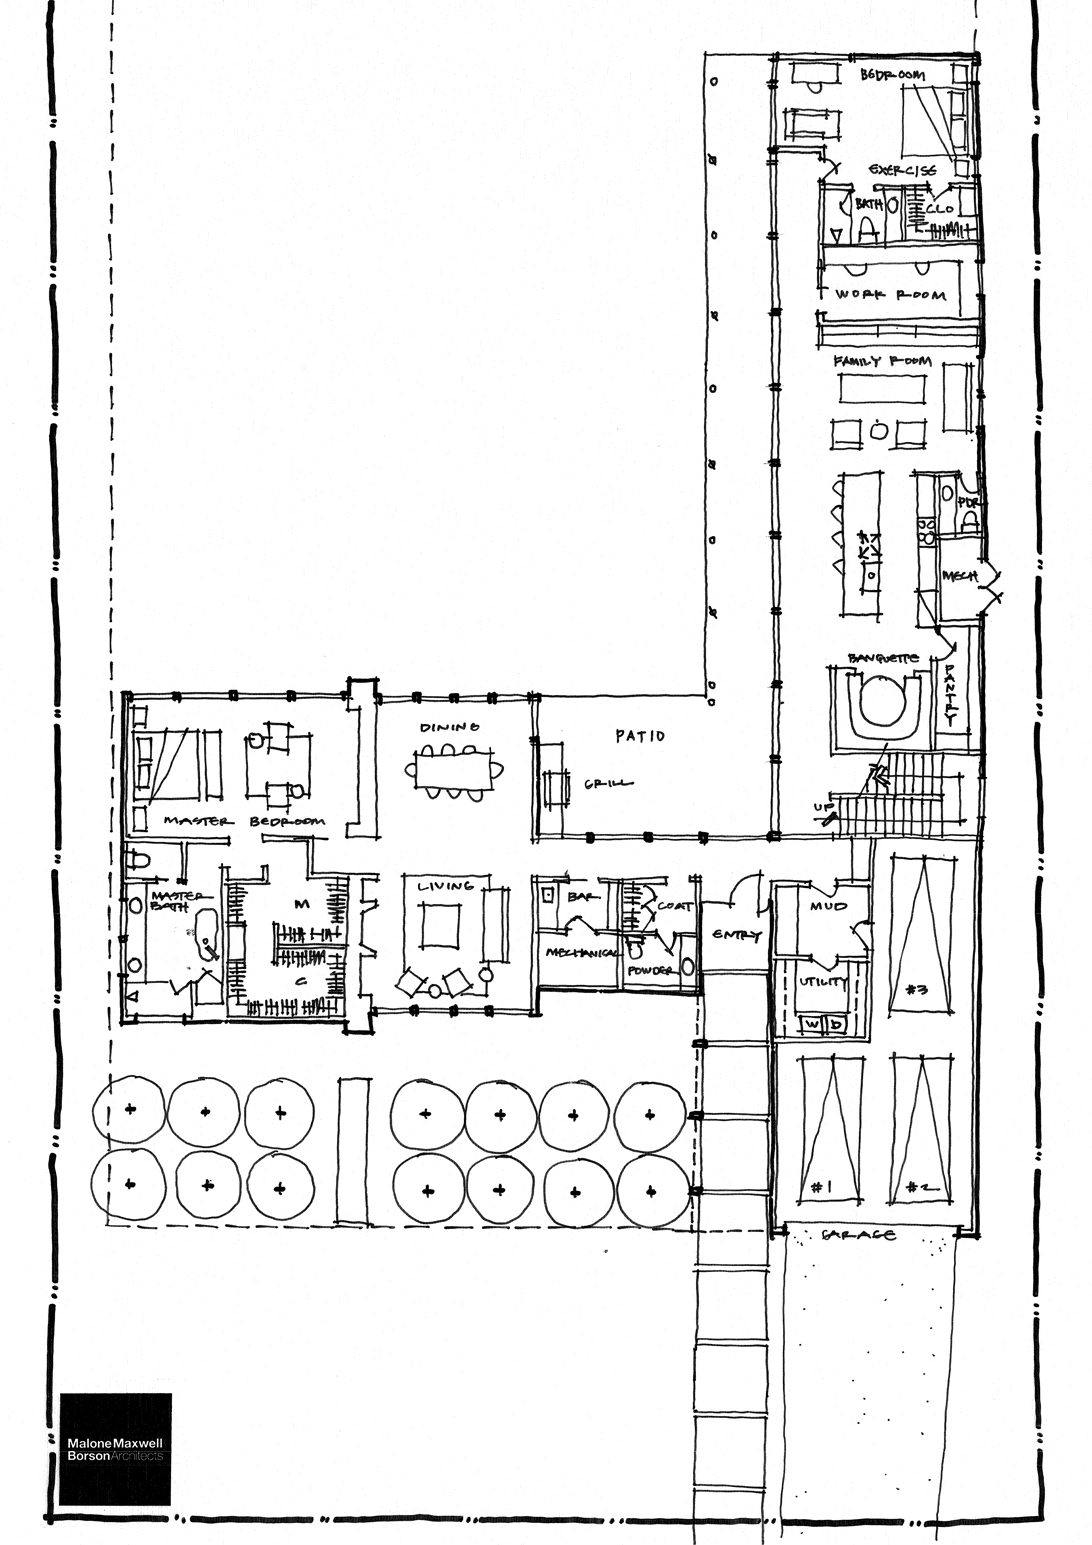 Bob Borson - Schematic Design Ground Floor Plan final